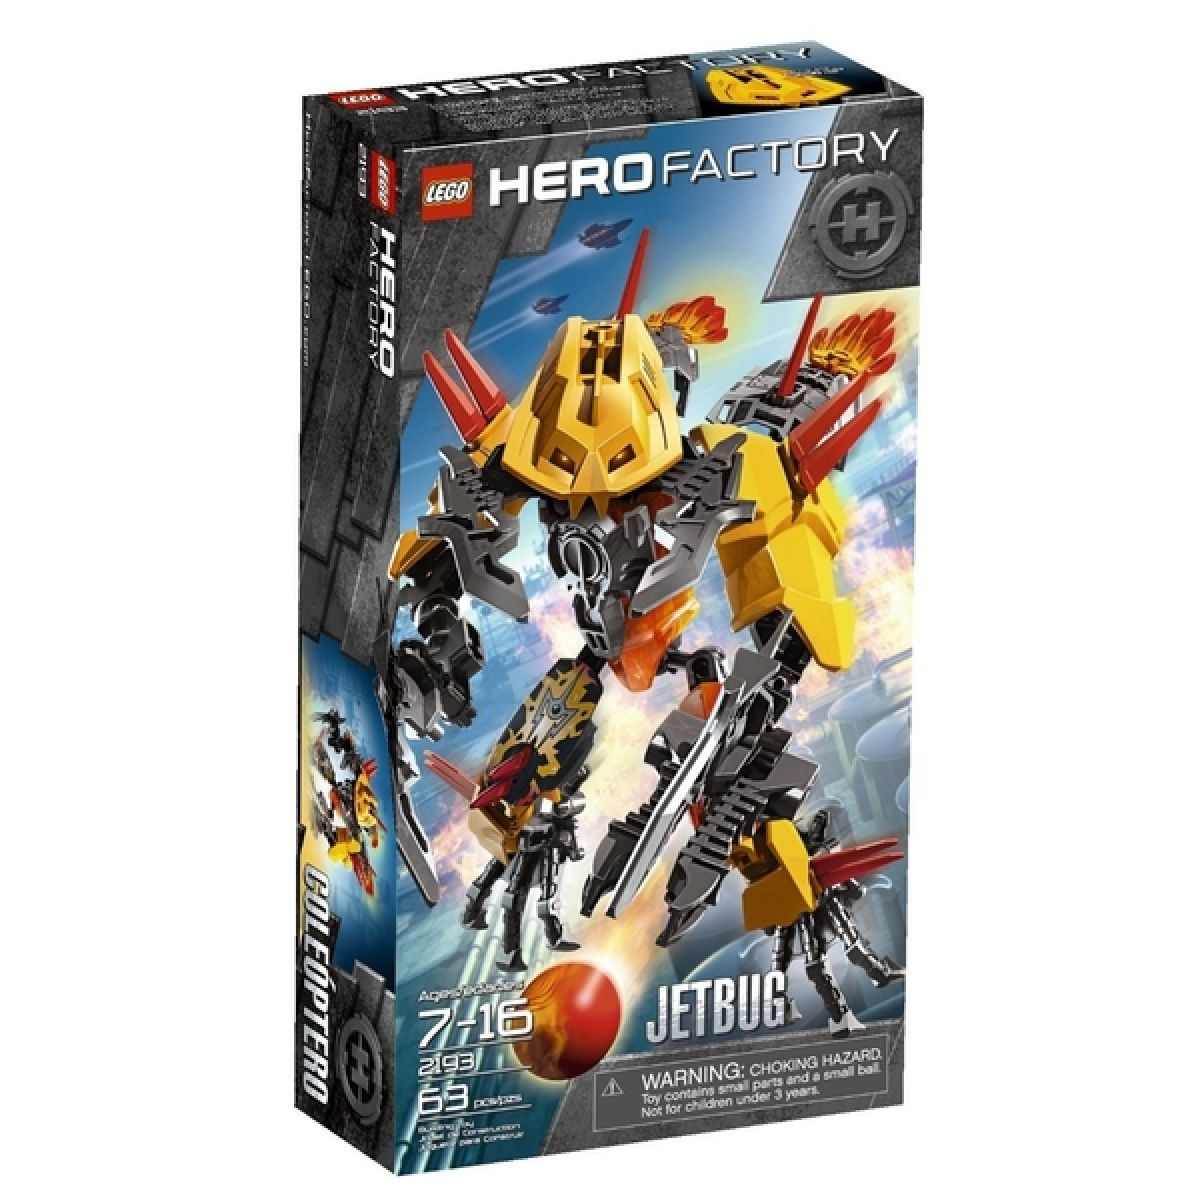 LEGO 2193 Hero Factory Jetbug